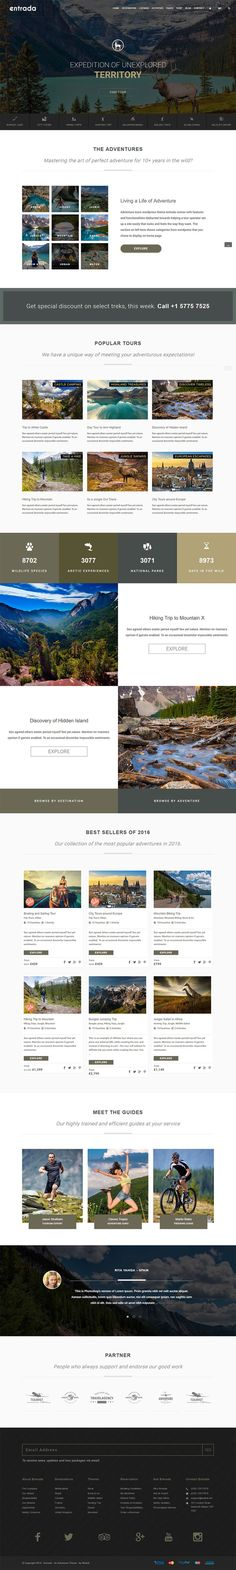 Entrada – the adventure tours and travel WordPress theme is developed with elegance, simplicity and functionality at the heart of the theme.: https://themeforest.net/item/tour-booking-adventure-tour-wordpress-theme-entrada/16867379?ref=rabosch